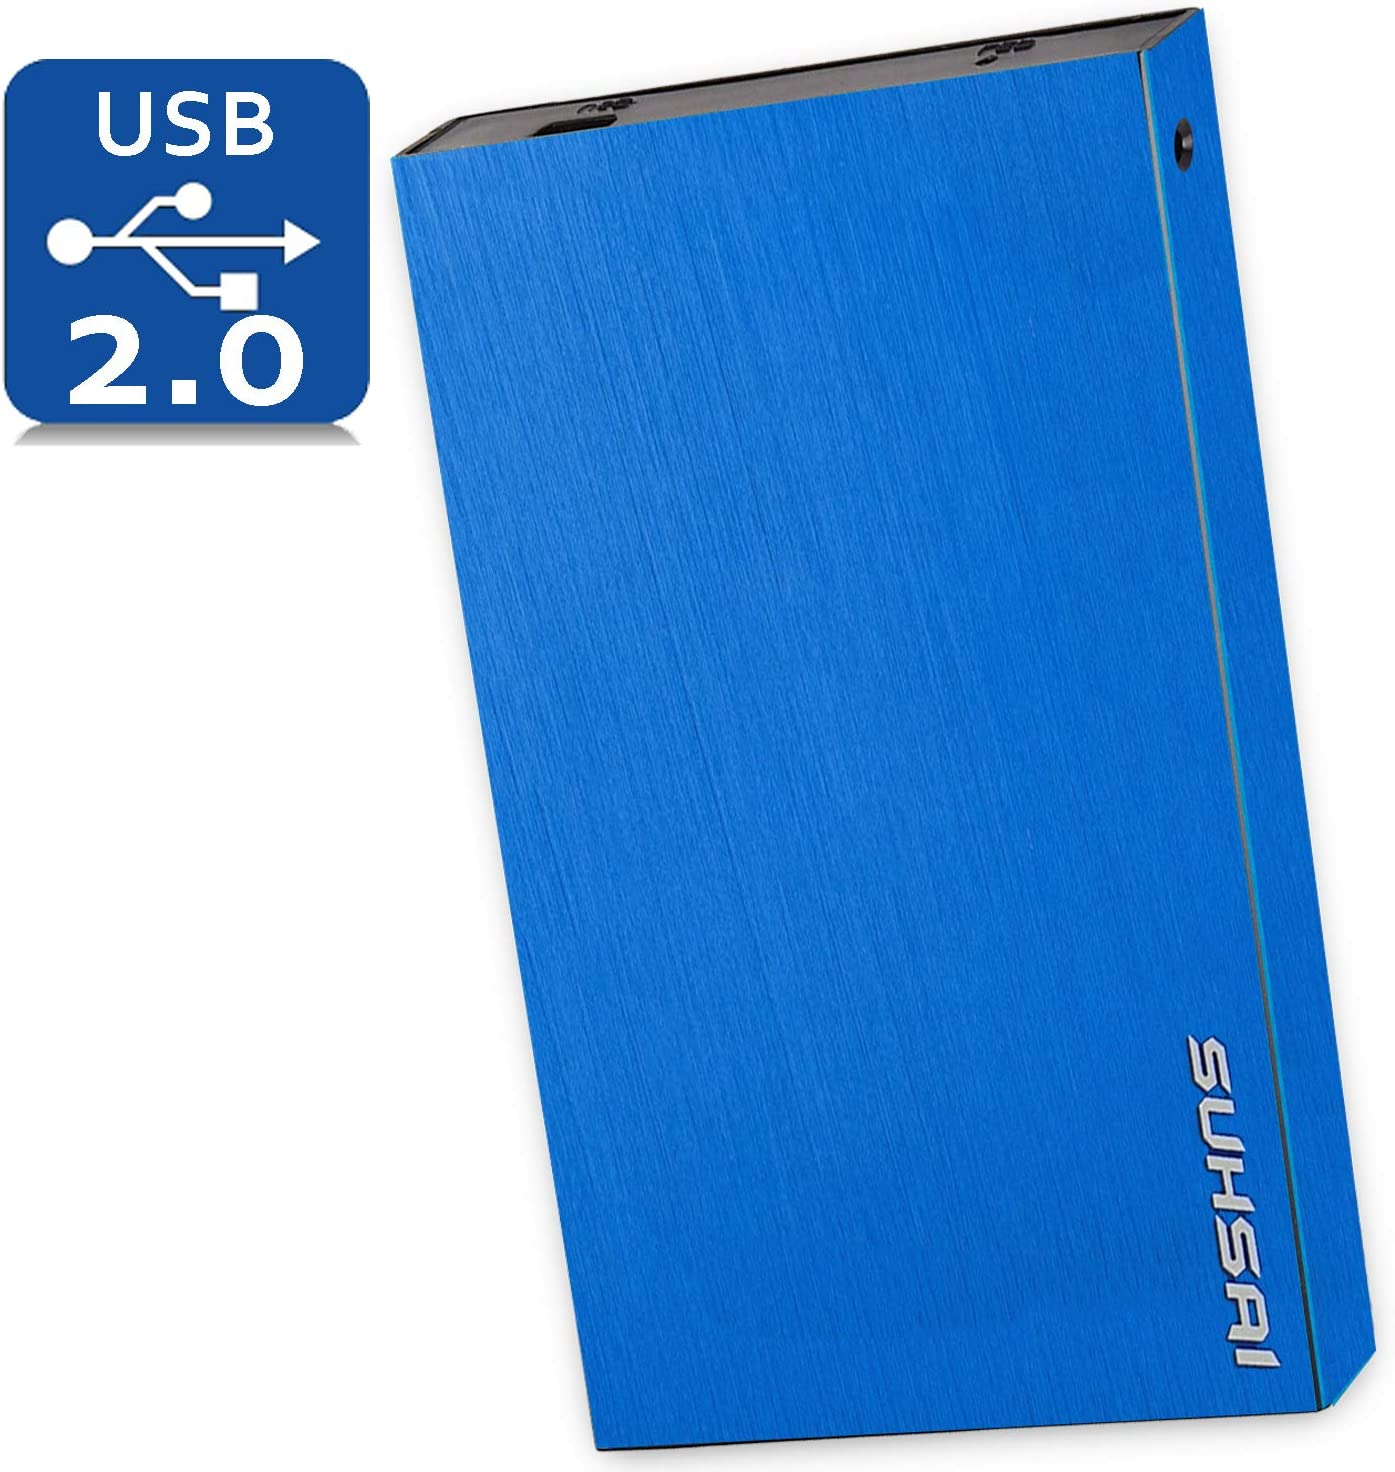 Suhsai Portable External Hard Drive, 2.0 USB External HDD Compatible for Computer, Laptop, PC, Smart TV, Mac (Blue, 250GB)